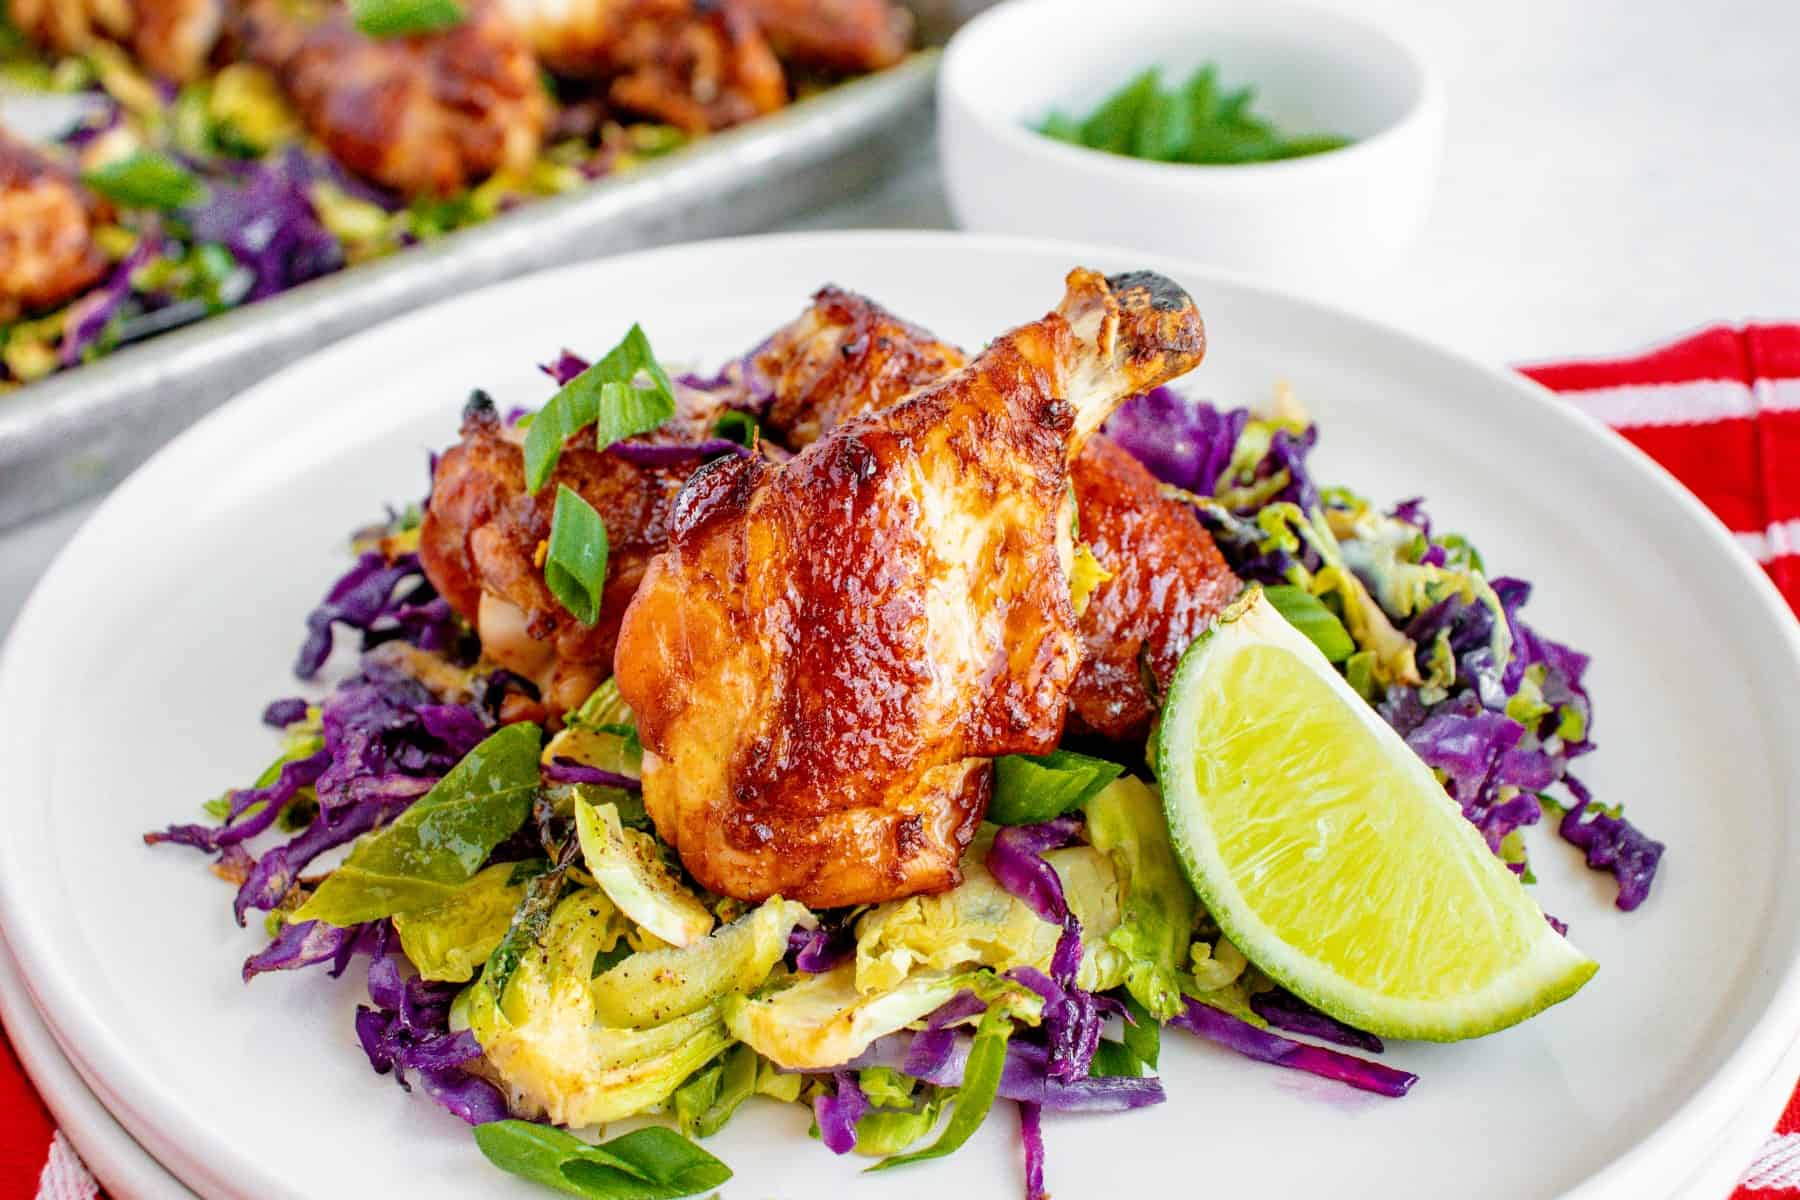 Wings over Brussels sprouts and red cabbage on a plate